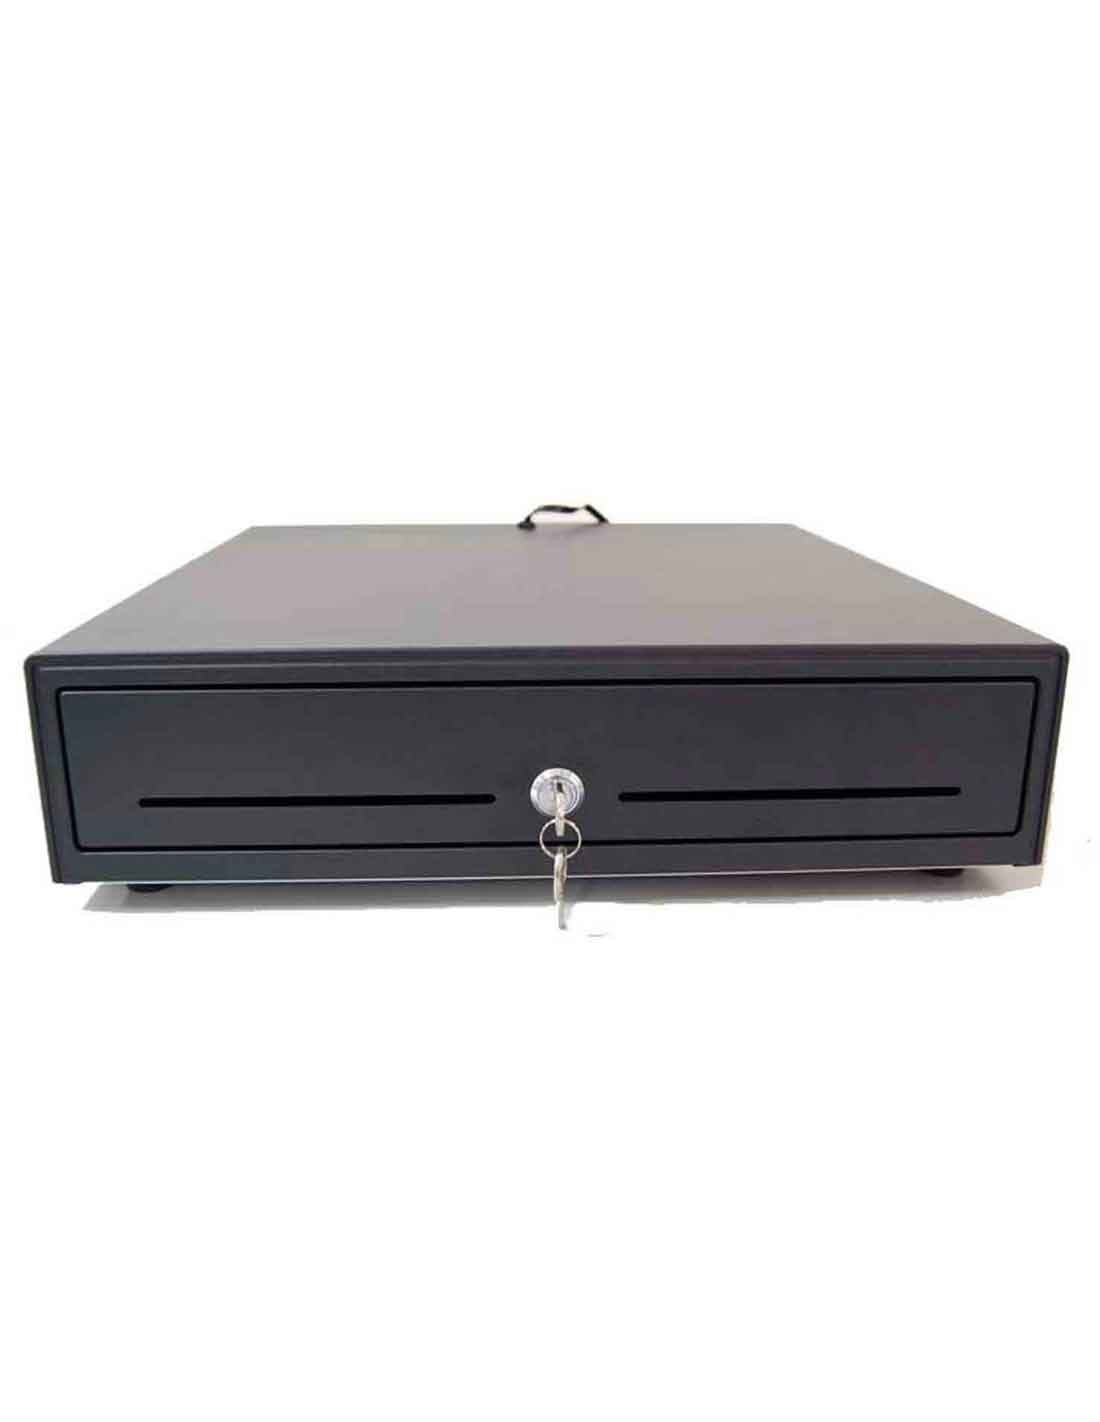 Pozone PCD 4141 Black Cash Drawer at a cheap price in Dubai